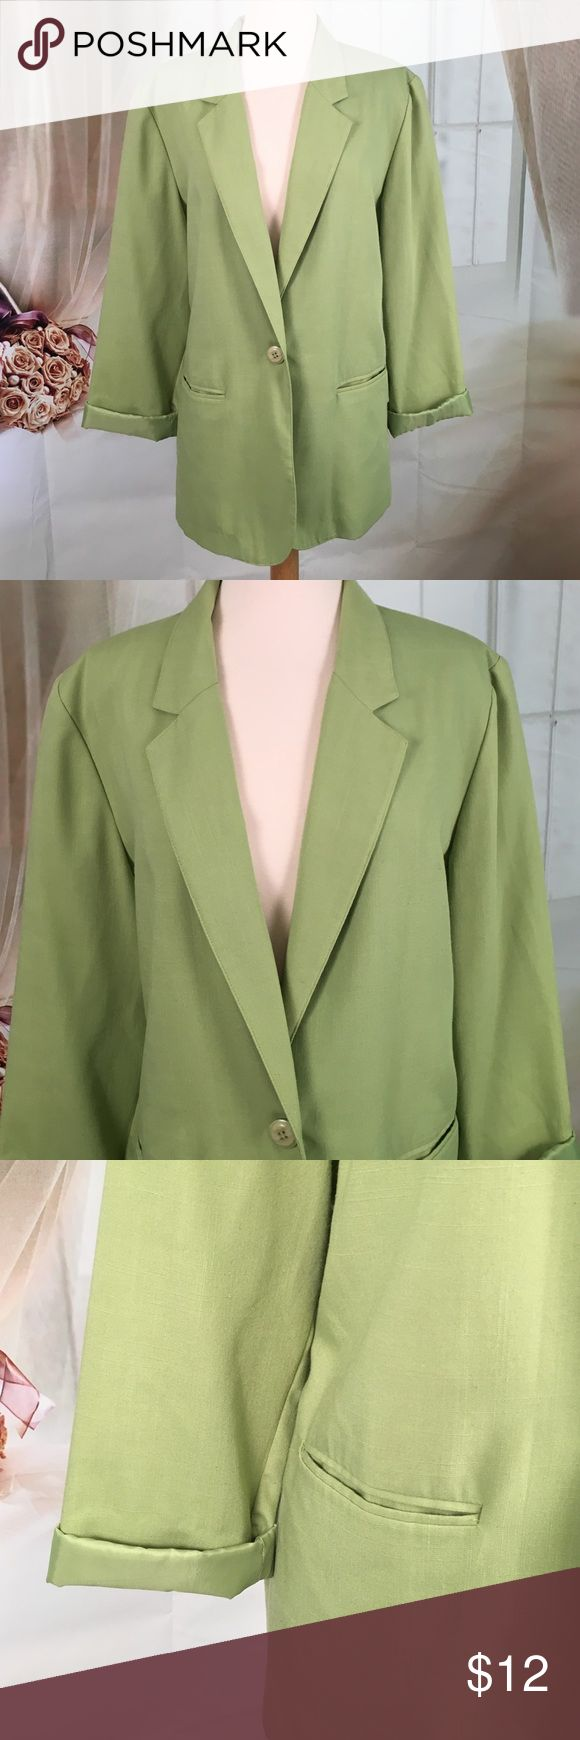 Sag Harbor Green Summer Blazer Today, featuring in Kaki Jo's closet is this nice summer blazer.  Has two front pockets.  Good condition.  Size 16.  ER396469-660PR Sag Harbor Jackets & Coats Blazers